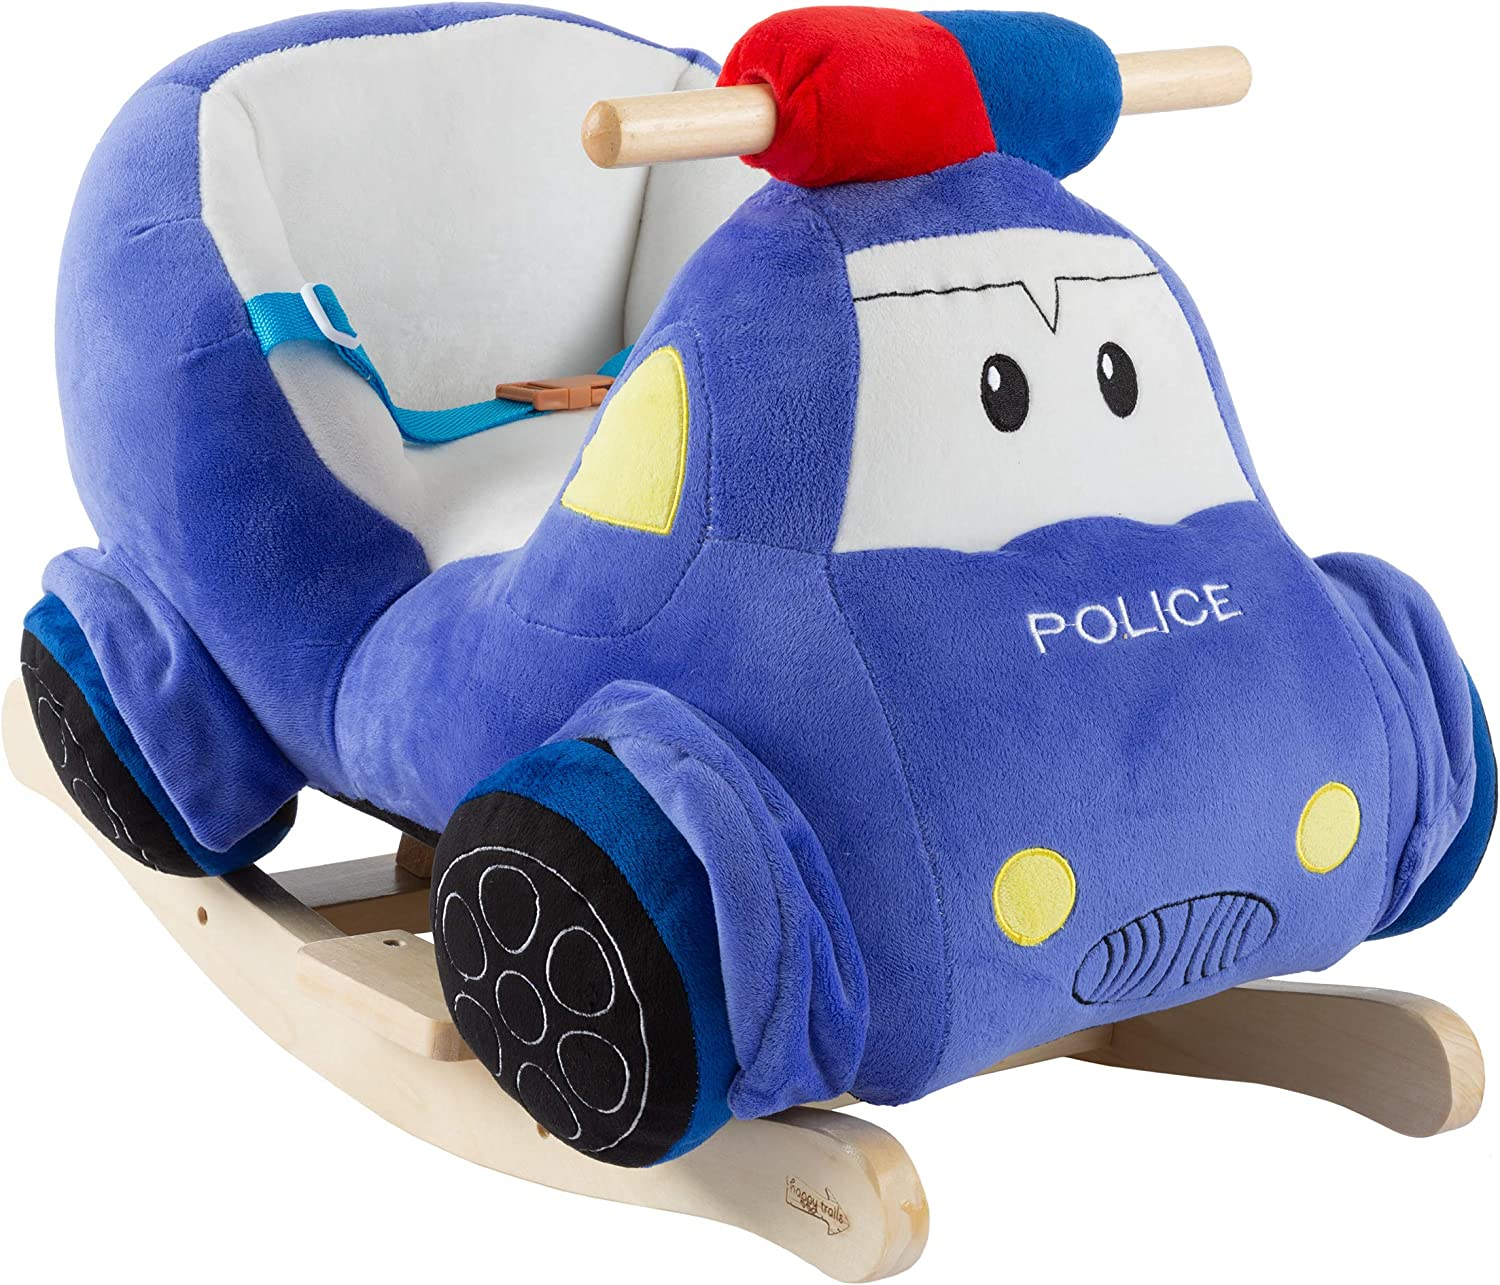 Happy Trails Rocking Police Car Toy- Kids Plush Stuffed Ride On Wooden Rockers with Sounds, Handles-Make Believe Fun for Boys, Girls, Toddlers, Brown